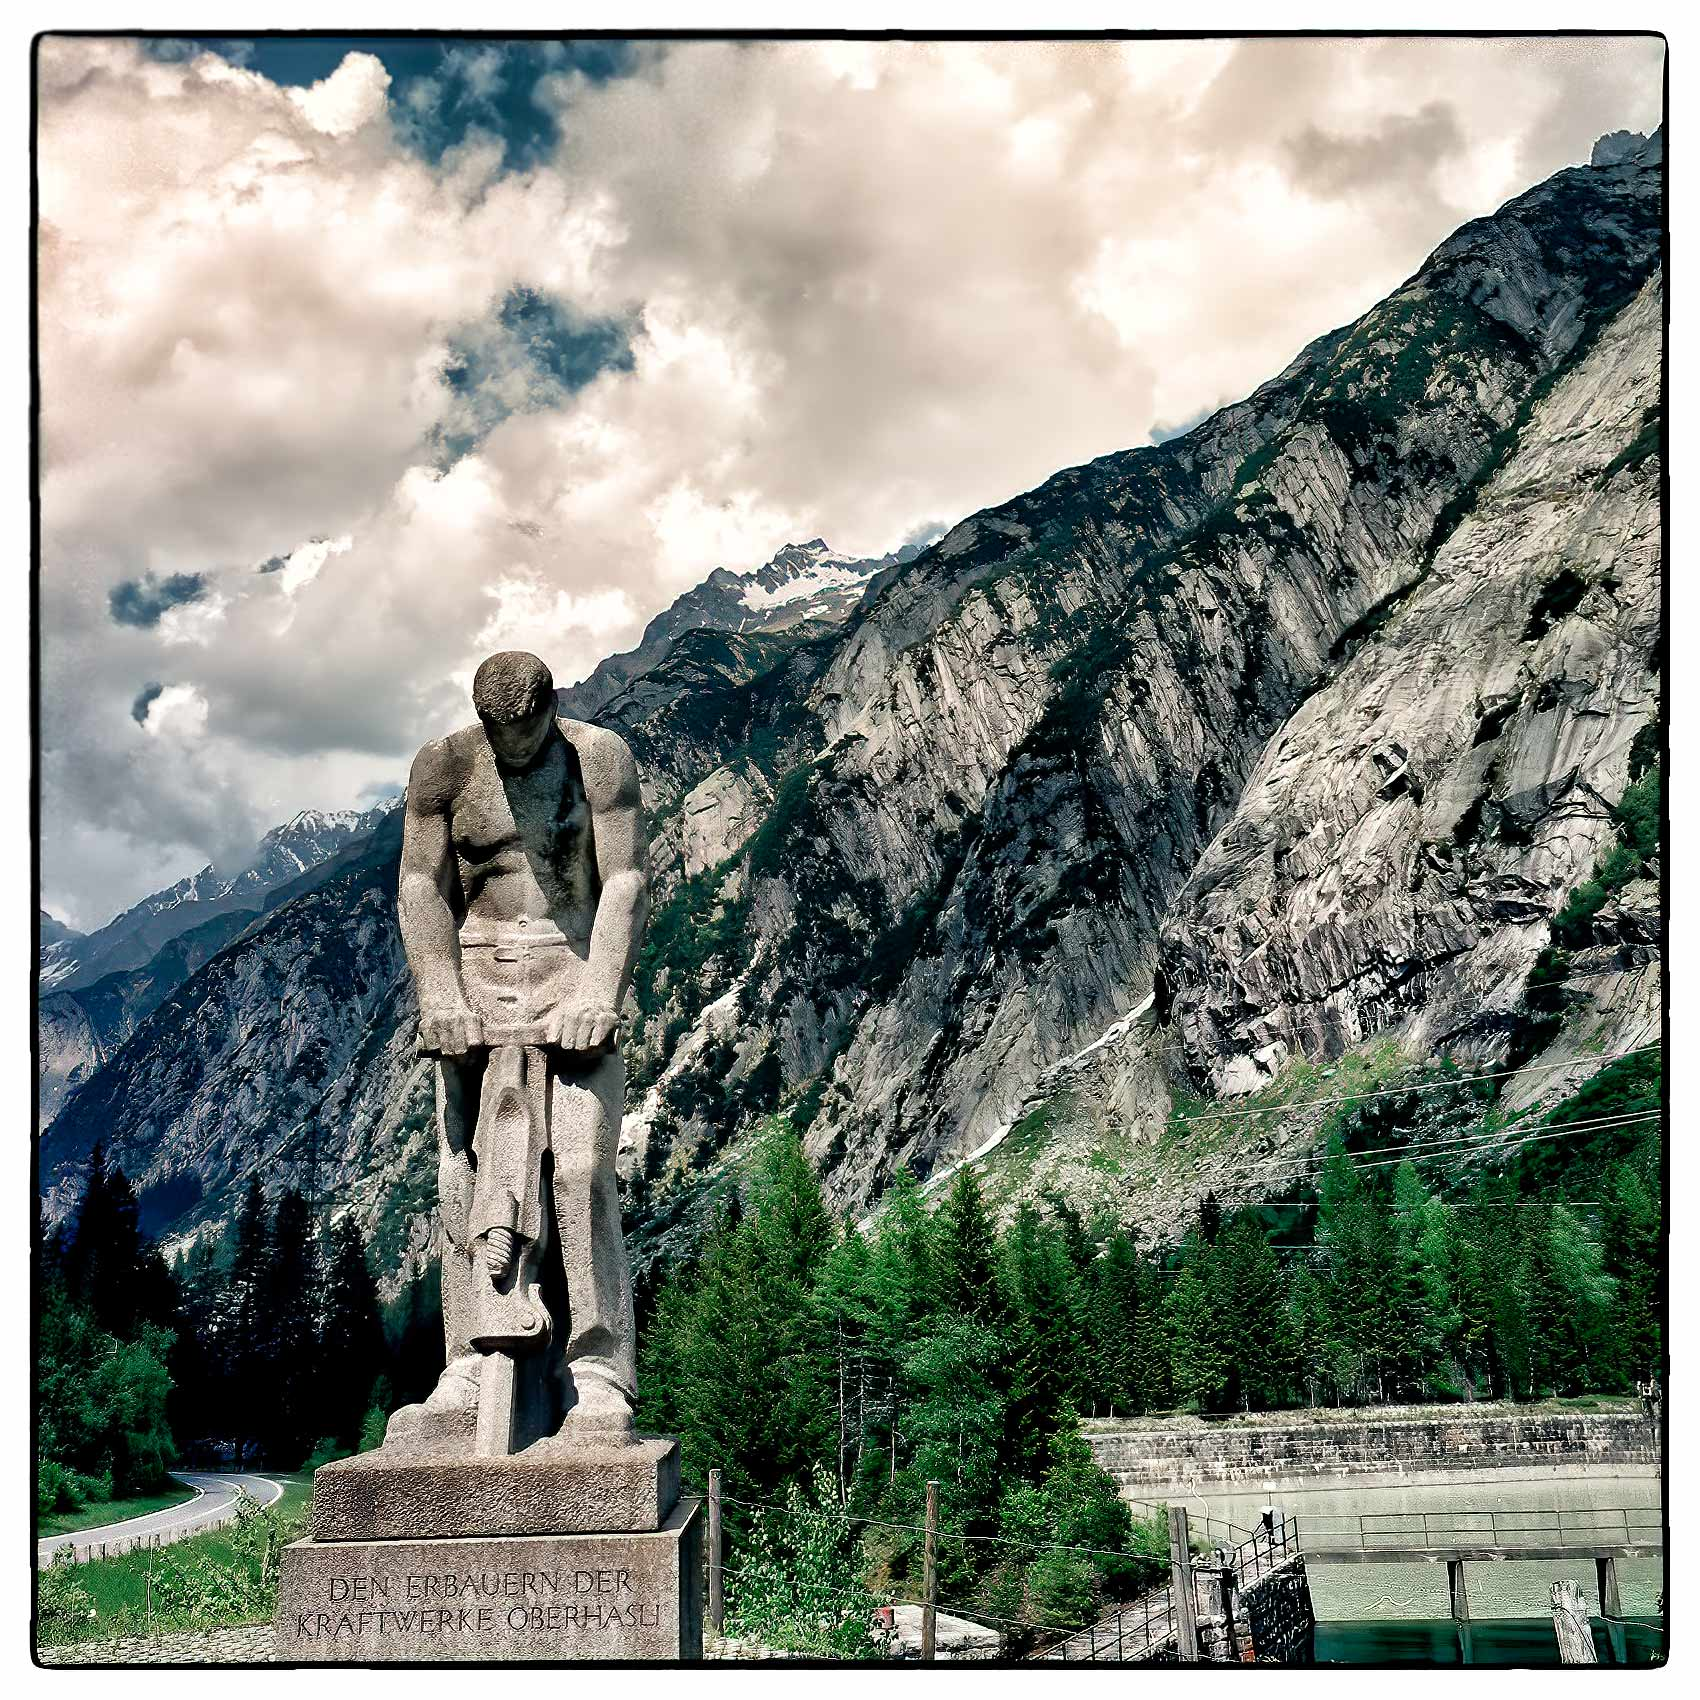 a-statue-of-a-construction-worker-stands-near-an-automobile-tunnel-in-the-swiss-alps